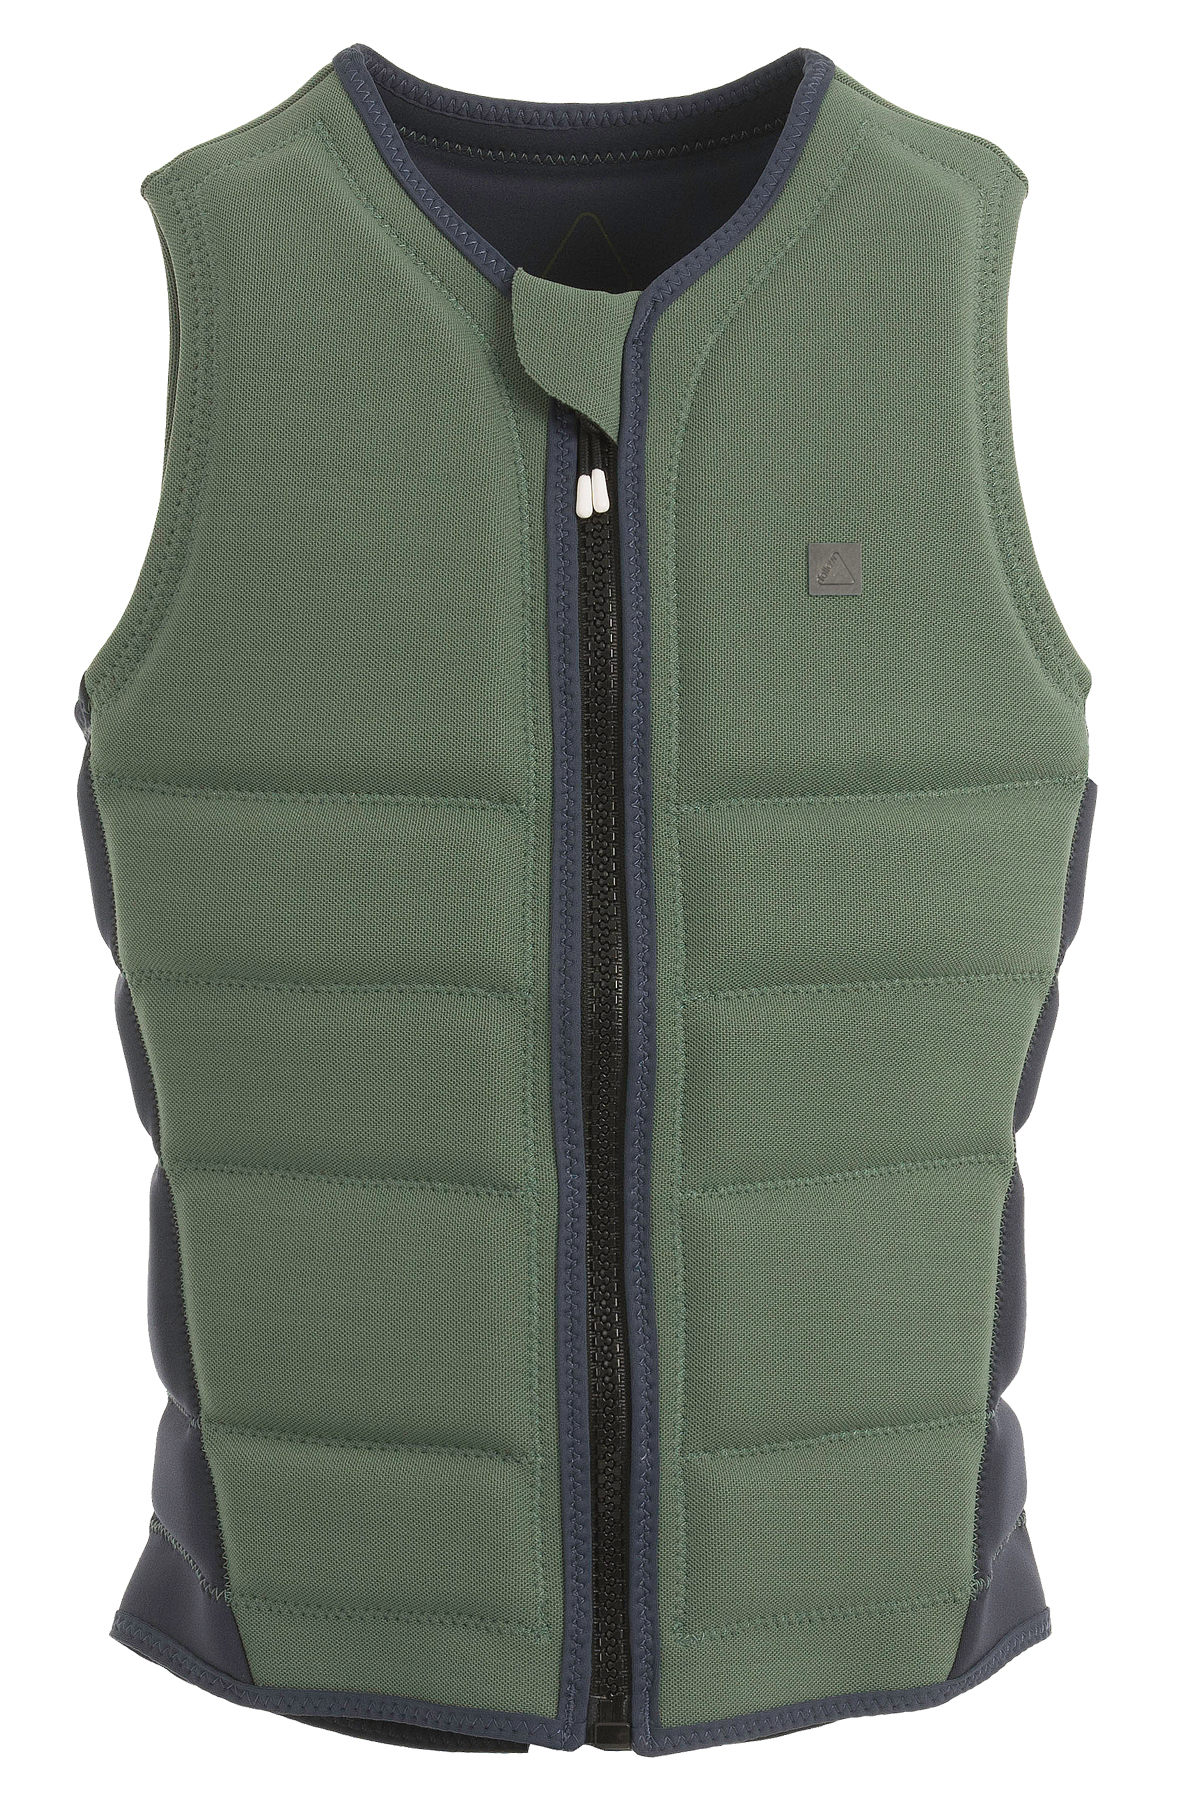 STOW LADIES IMPACT VEST - OLIVE FOLLOW 2019